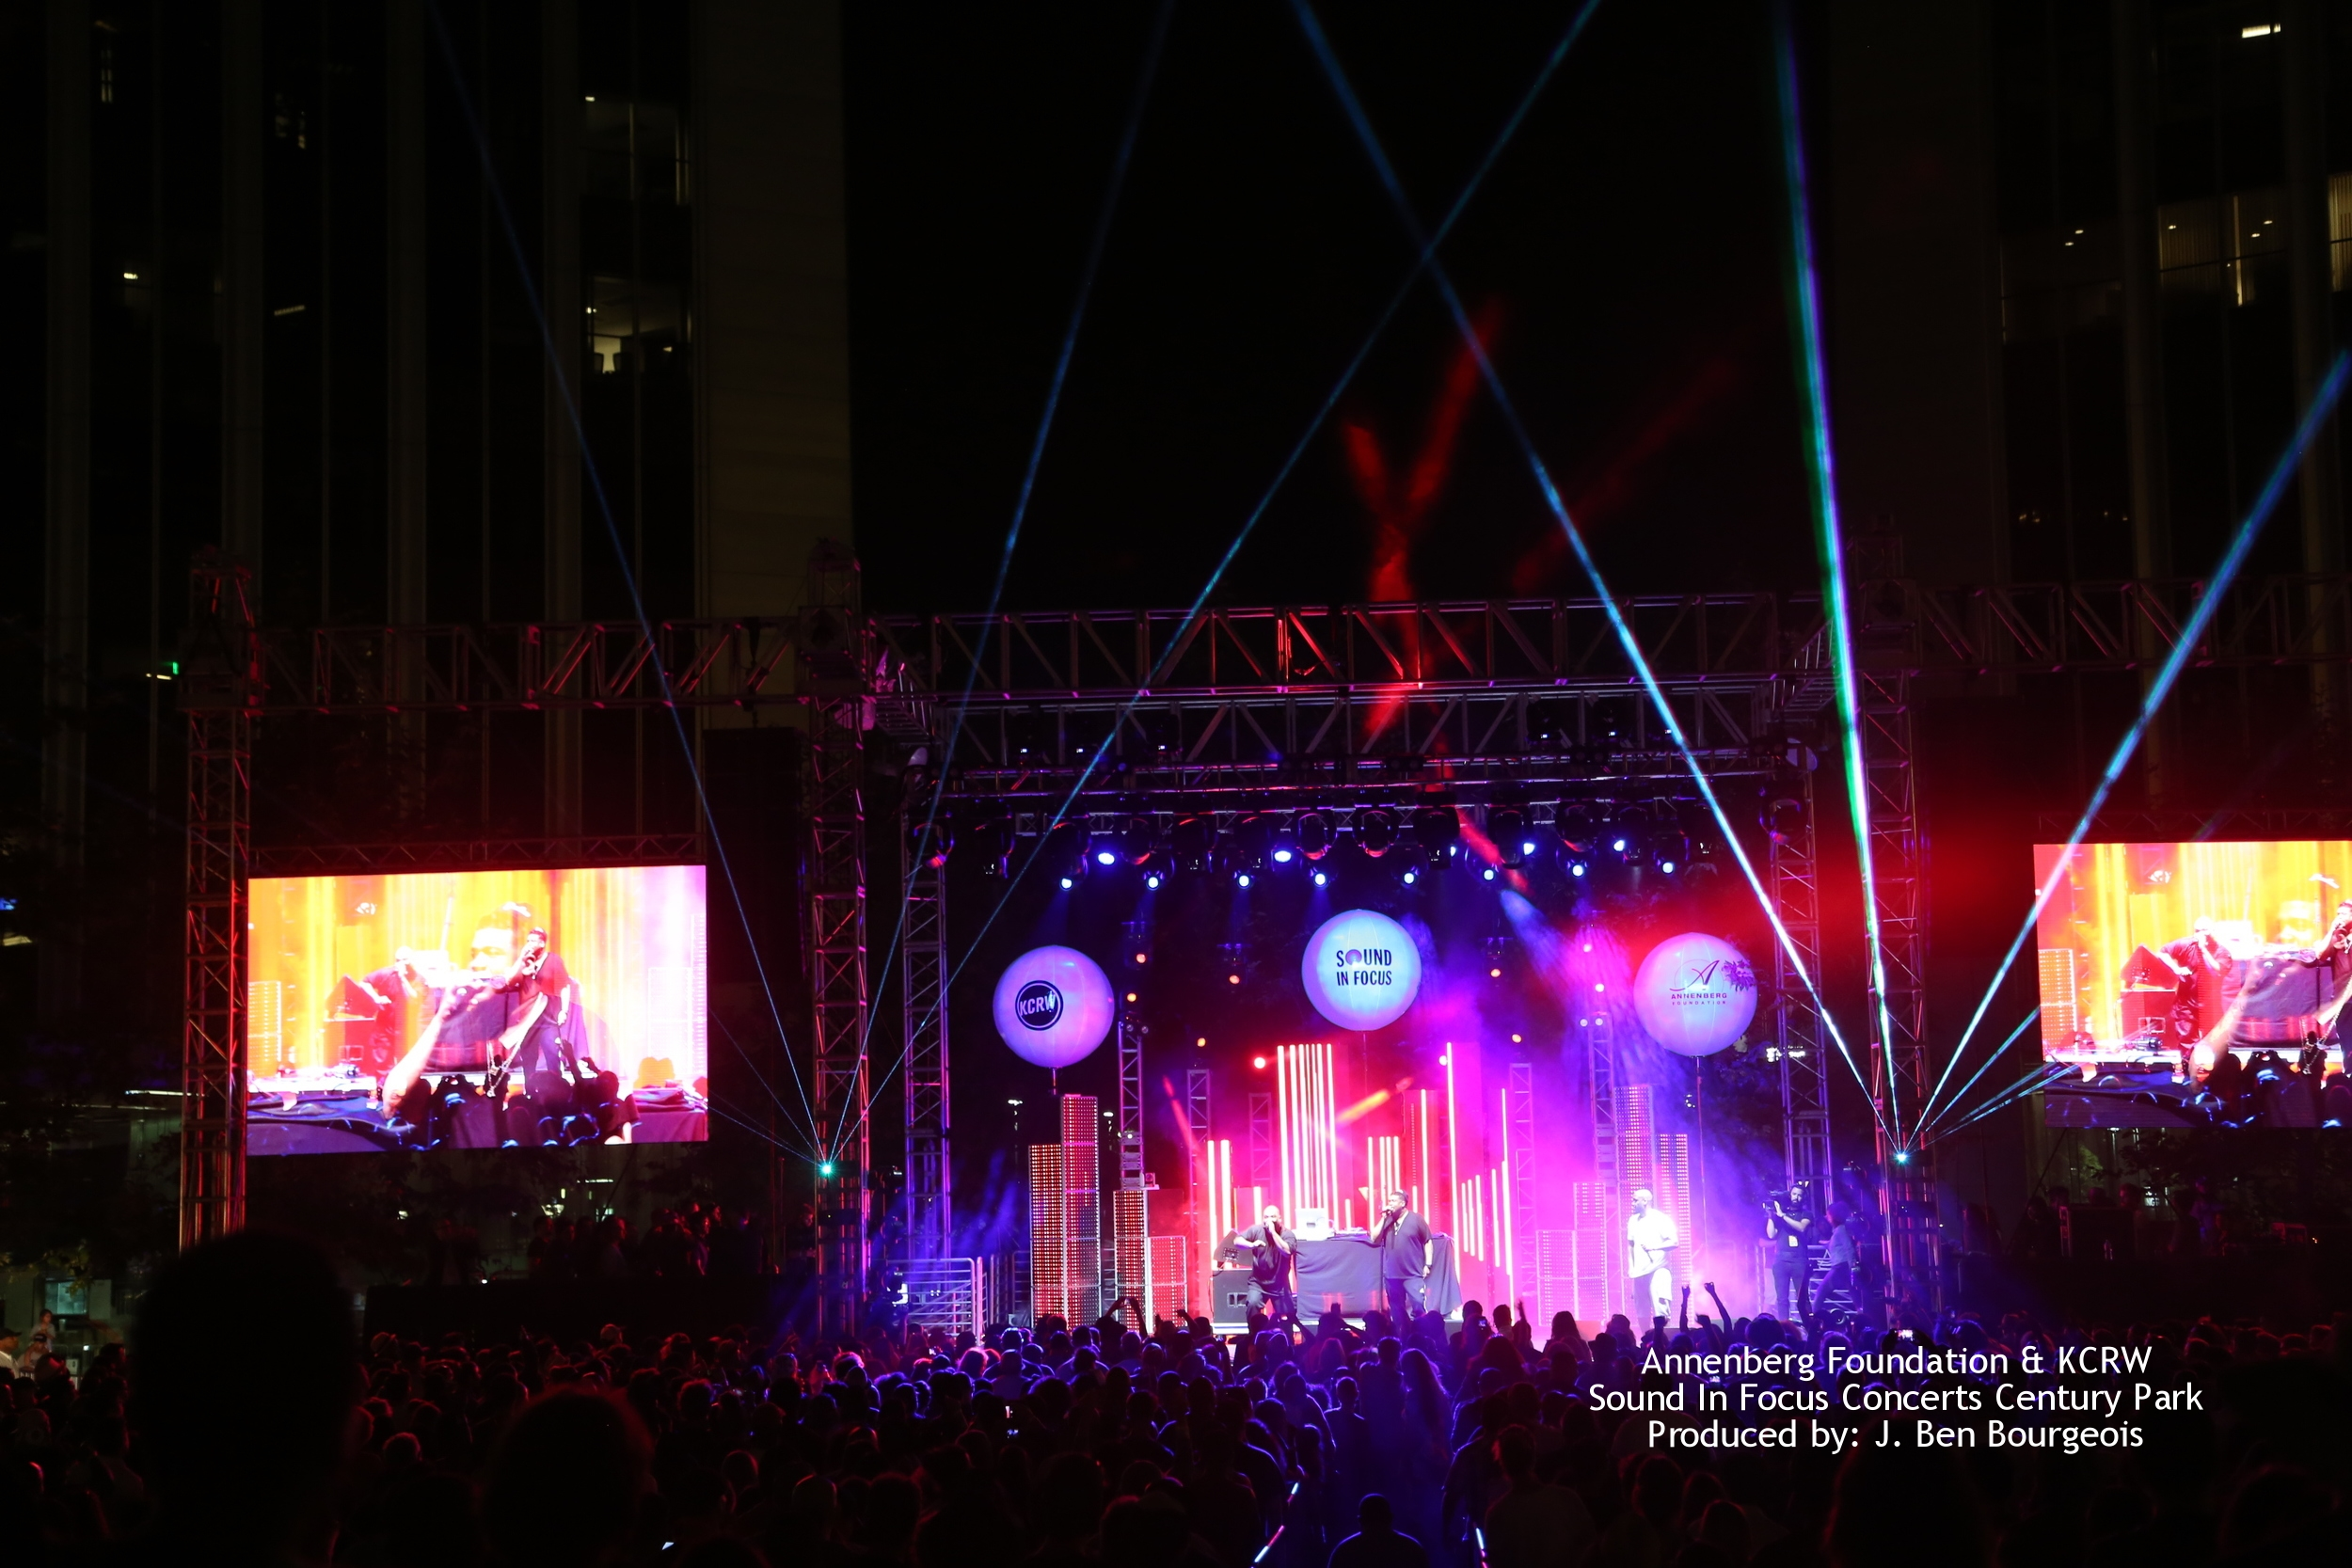 Annenberg Foundation & KCRW Sound In Focus Concerts Century Park Produced by: J. Ben Bourgeois